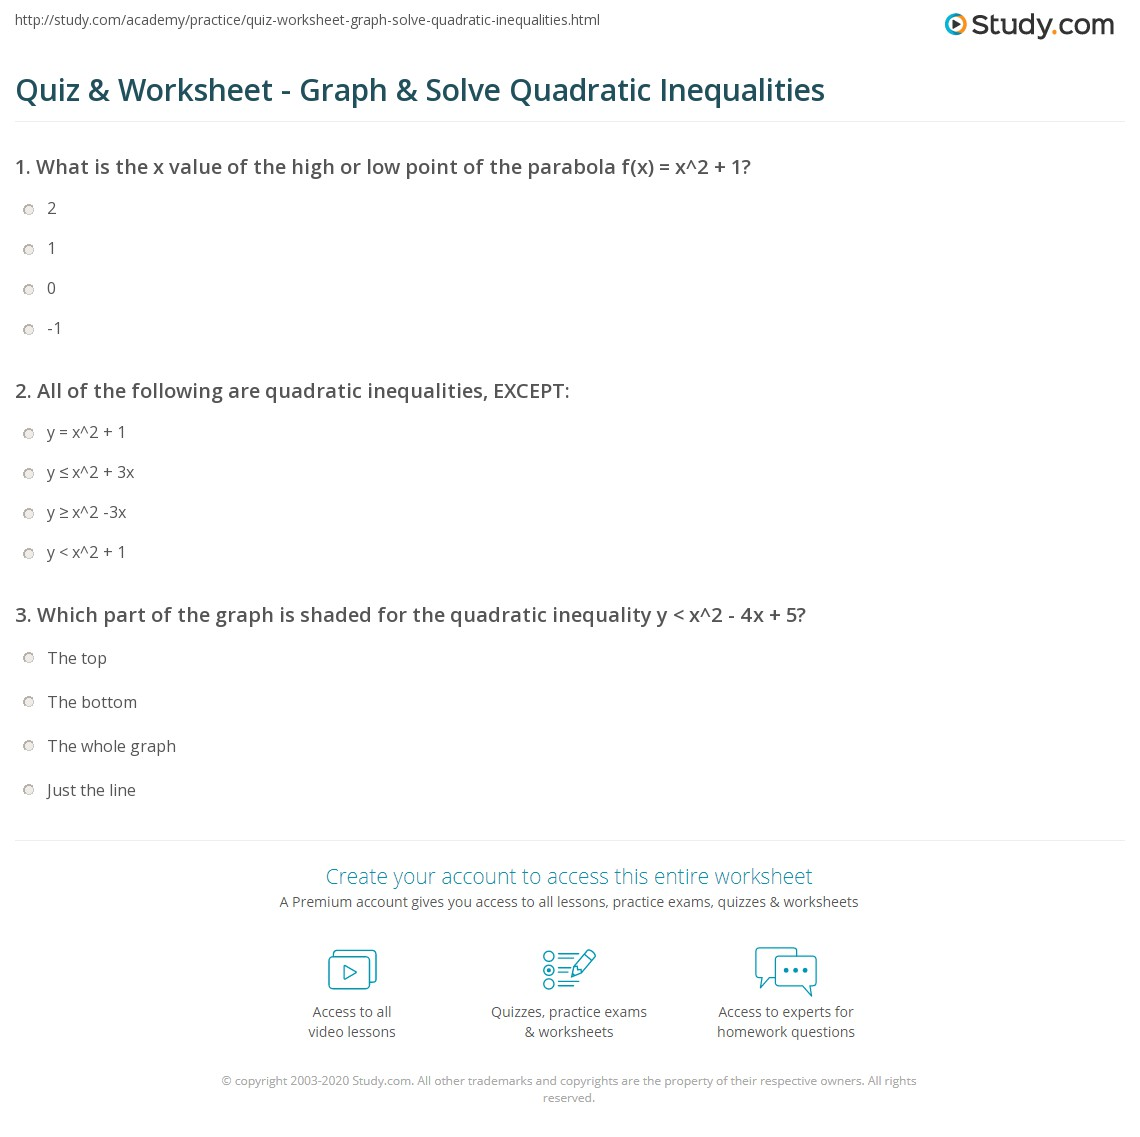 Printables Graphing Quadratic Inequalities Worksheet quiz worksheet graph solve quadratic inequalities study com print graphing solving examples process worksheet